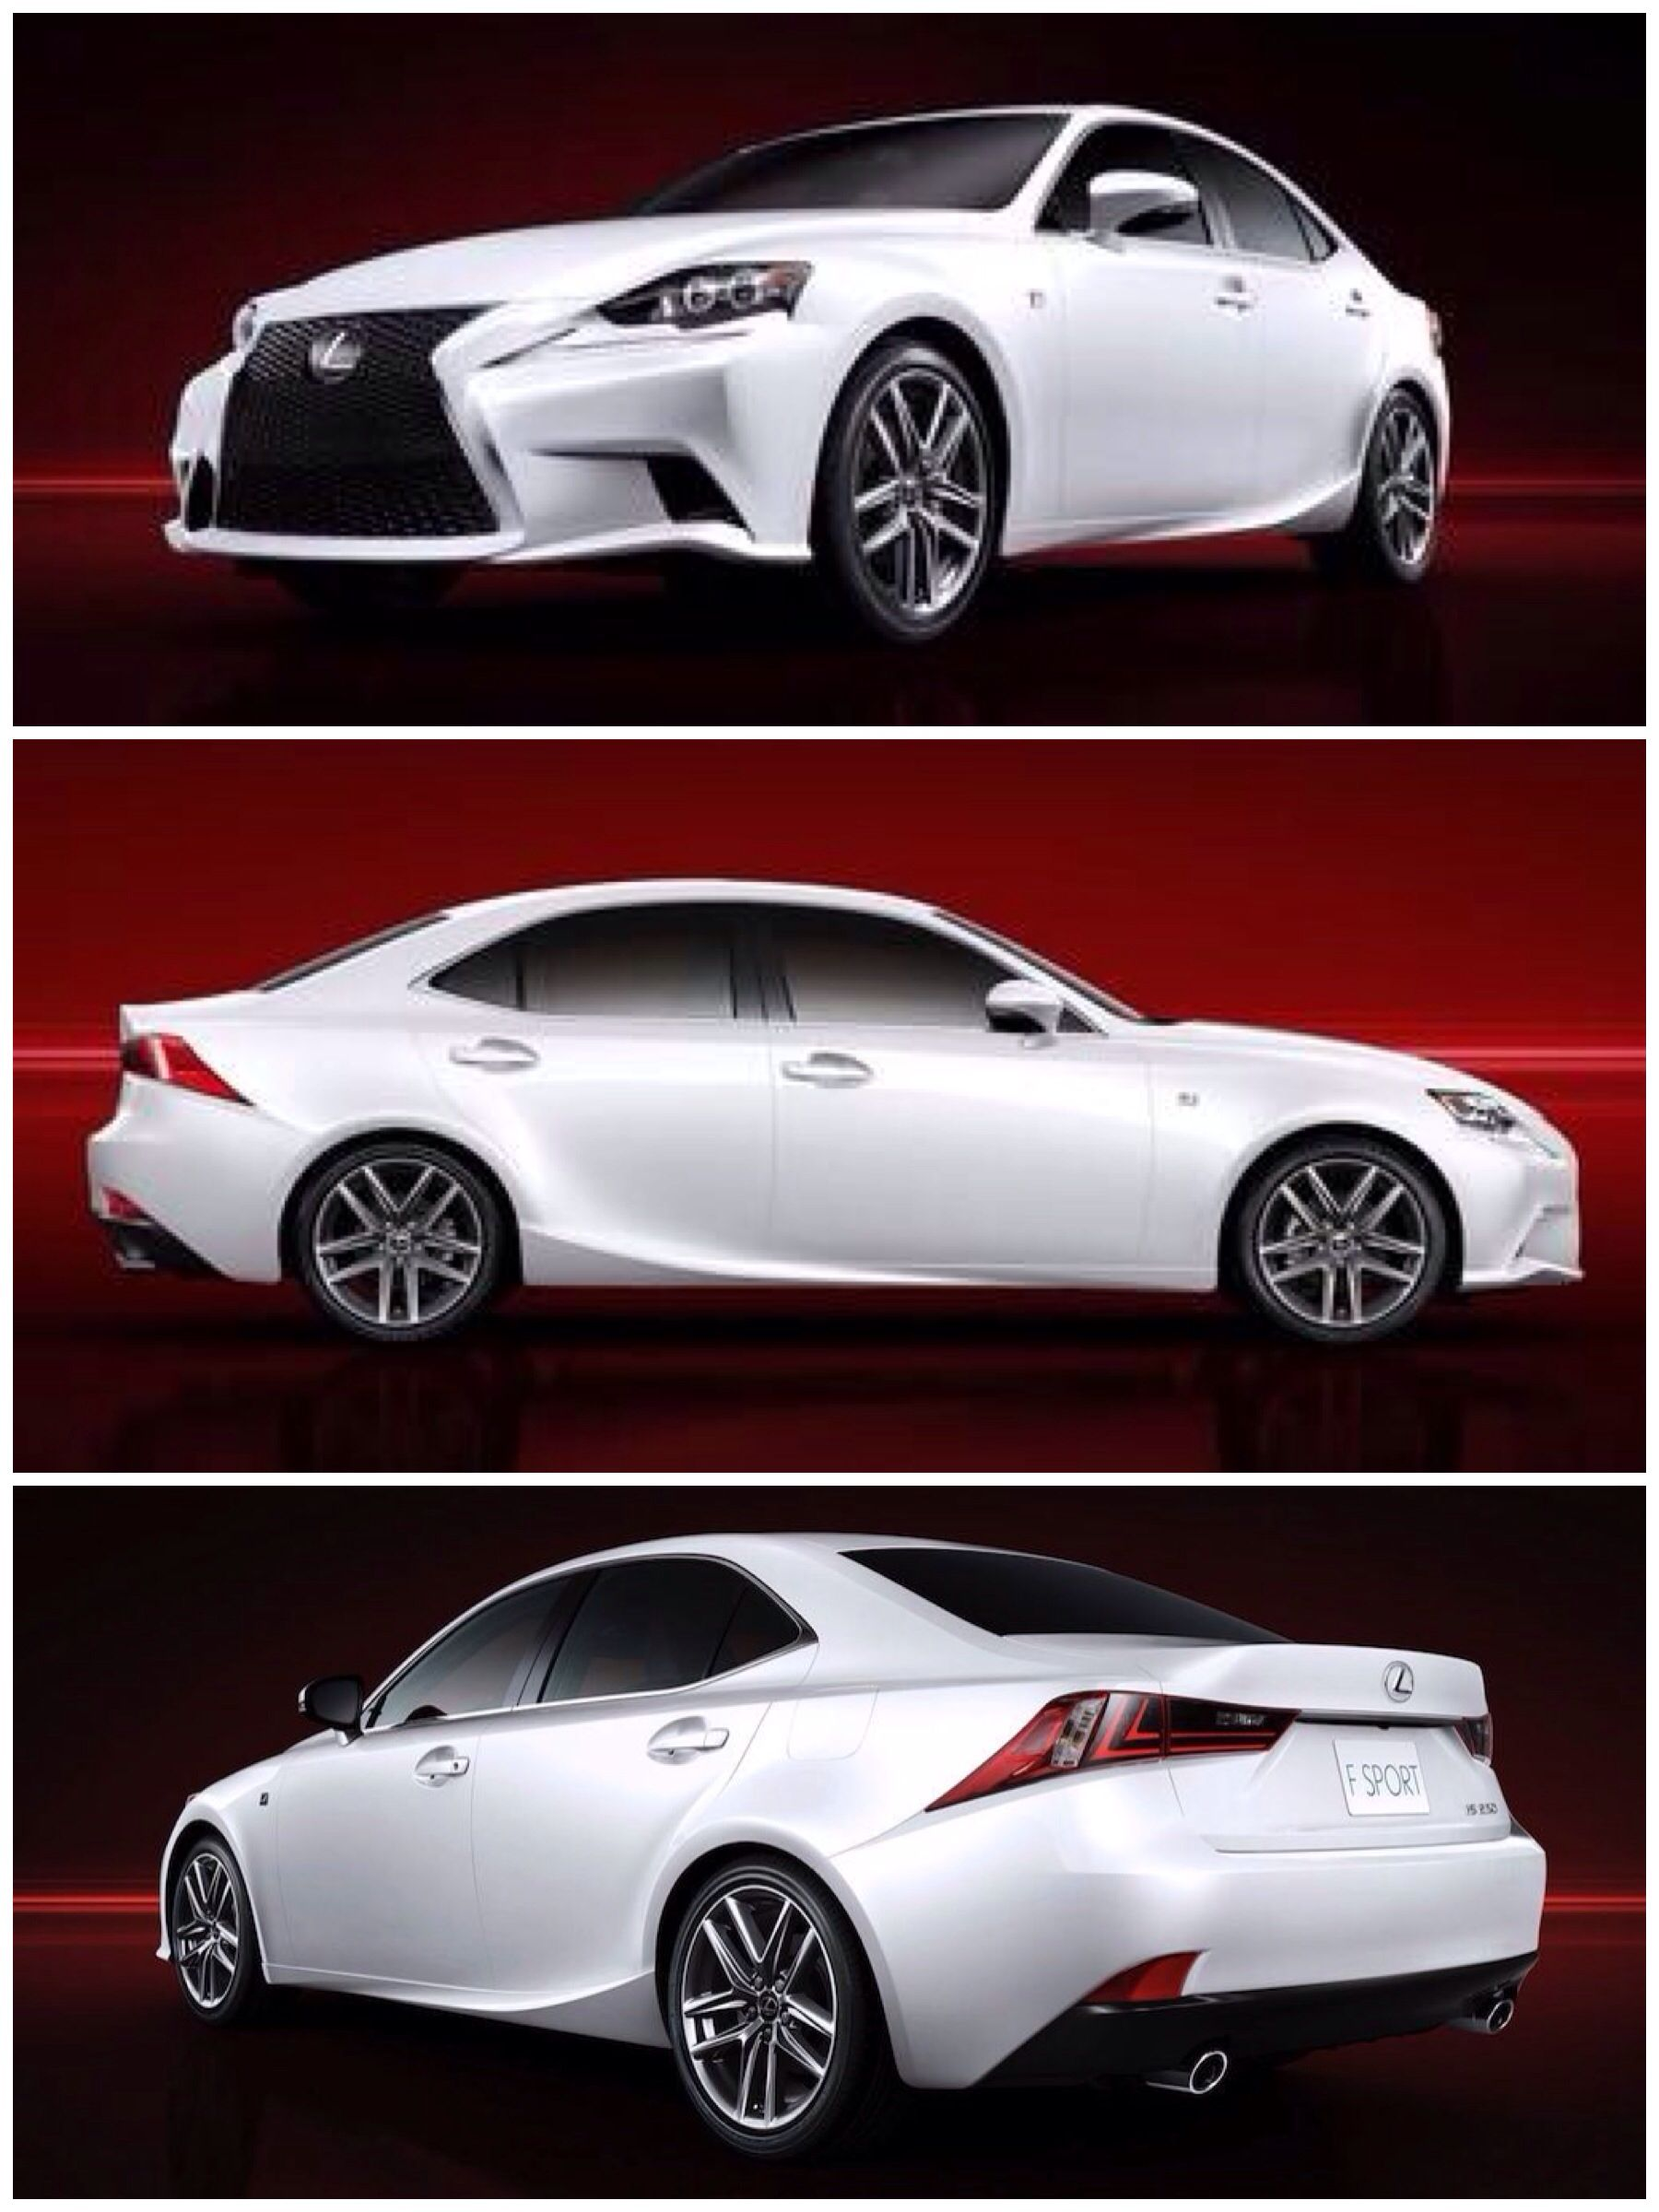 cars wood serving annapolis sheehy washington d jm auto car used fresh sport and amp surrounding vehicle areas lovely lexus of c tom